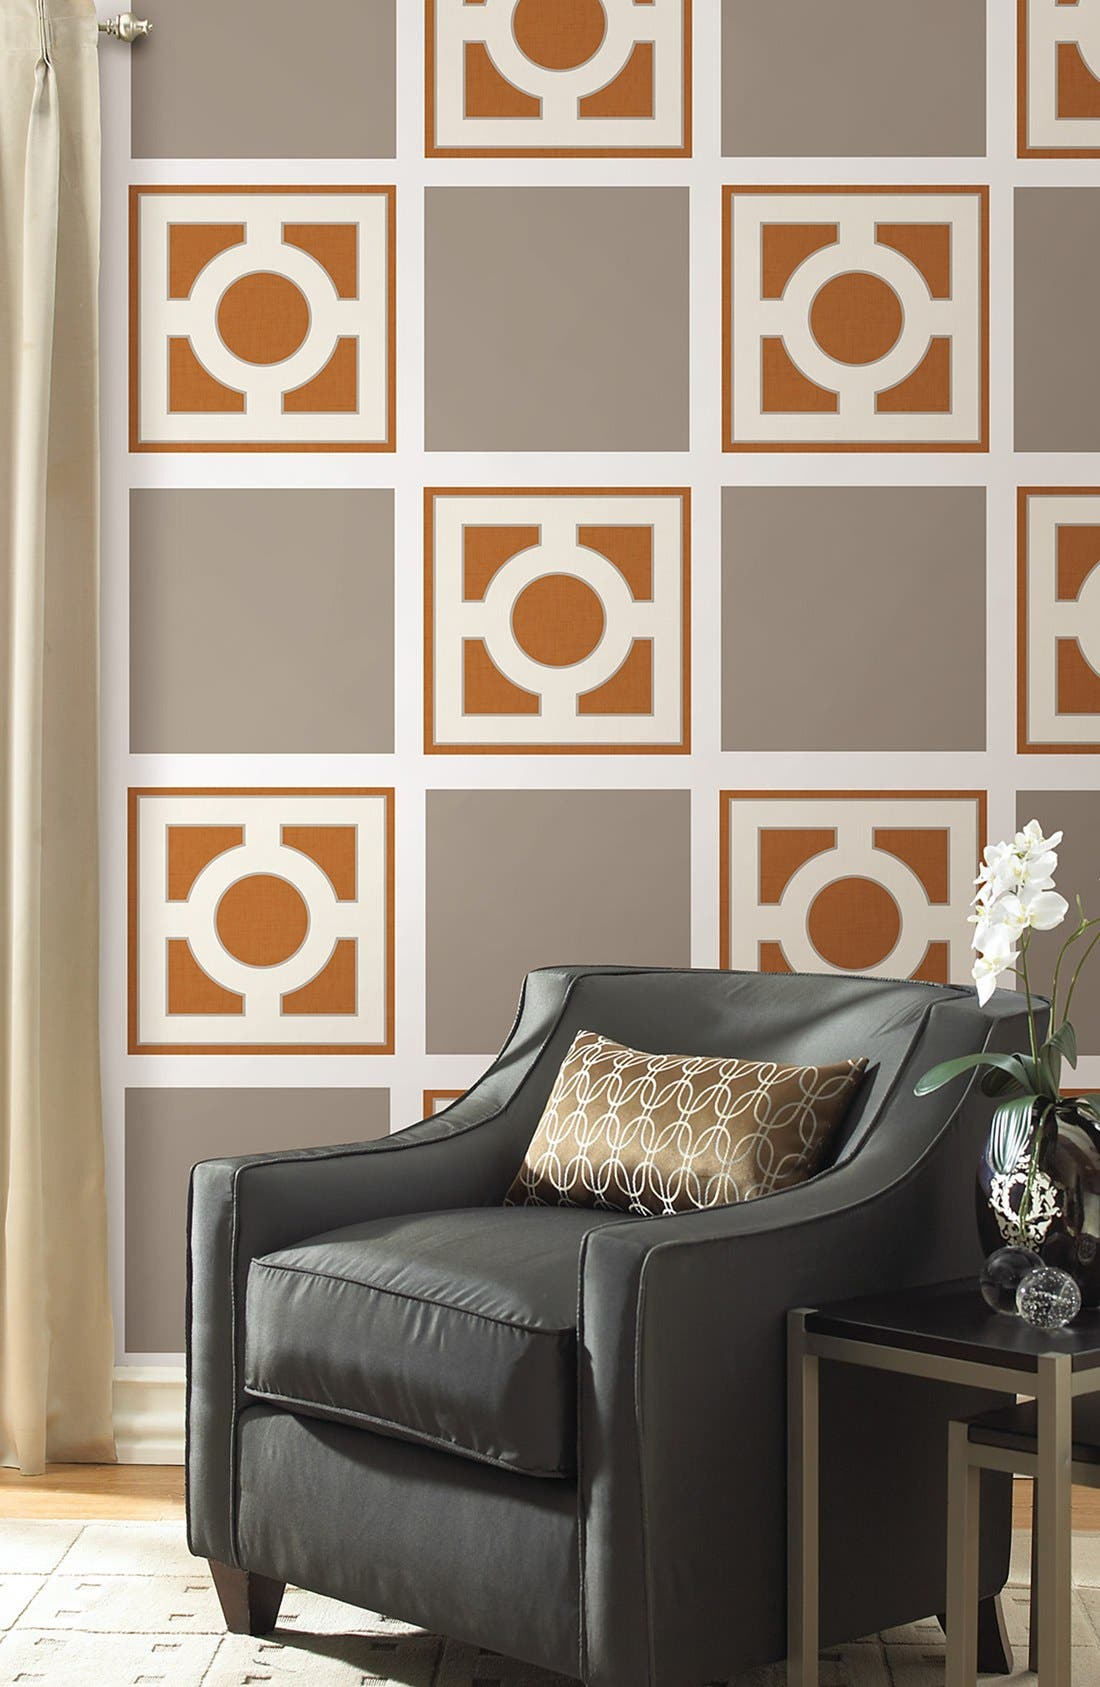 Alternate Image 1 Selected - Wallpops 'Zoe & Pebble Blox' Wall Art